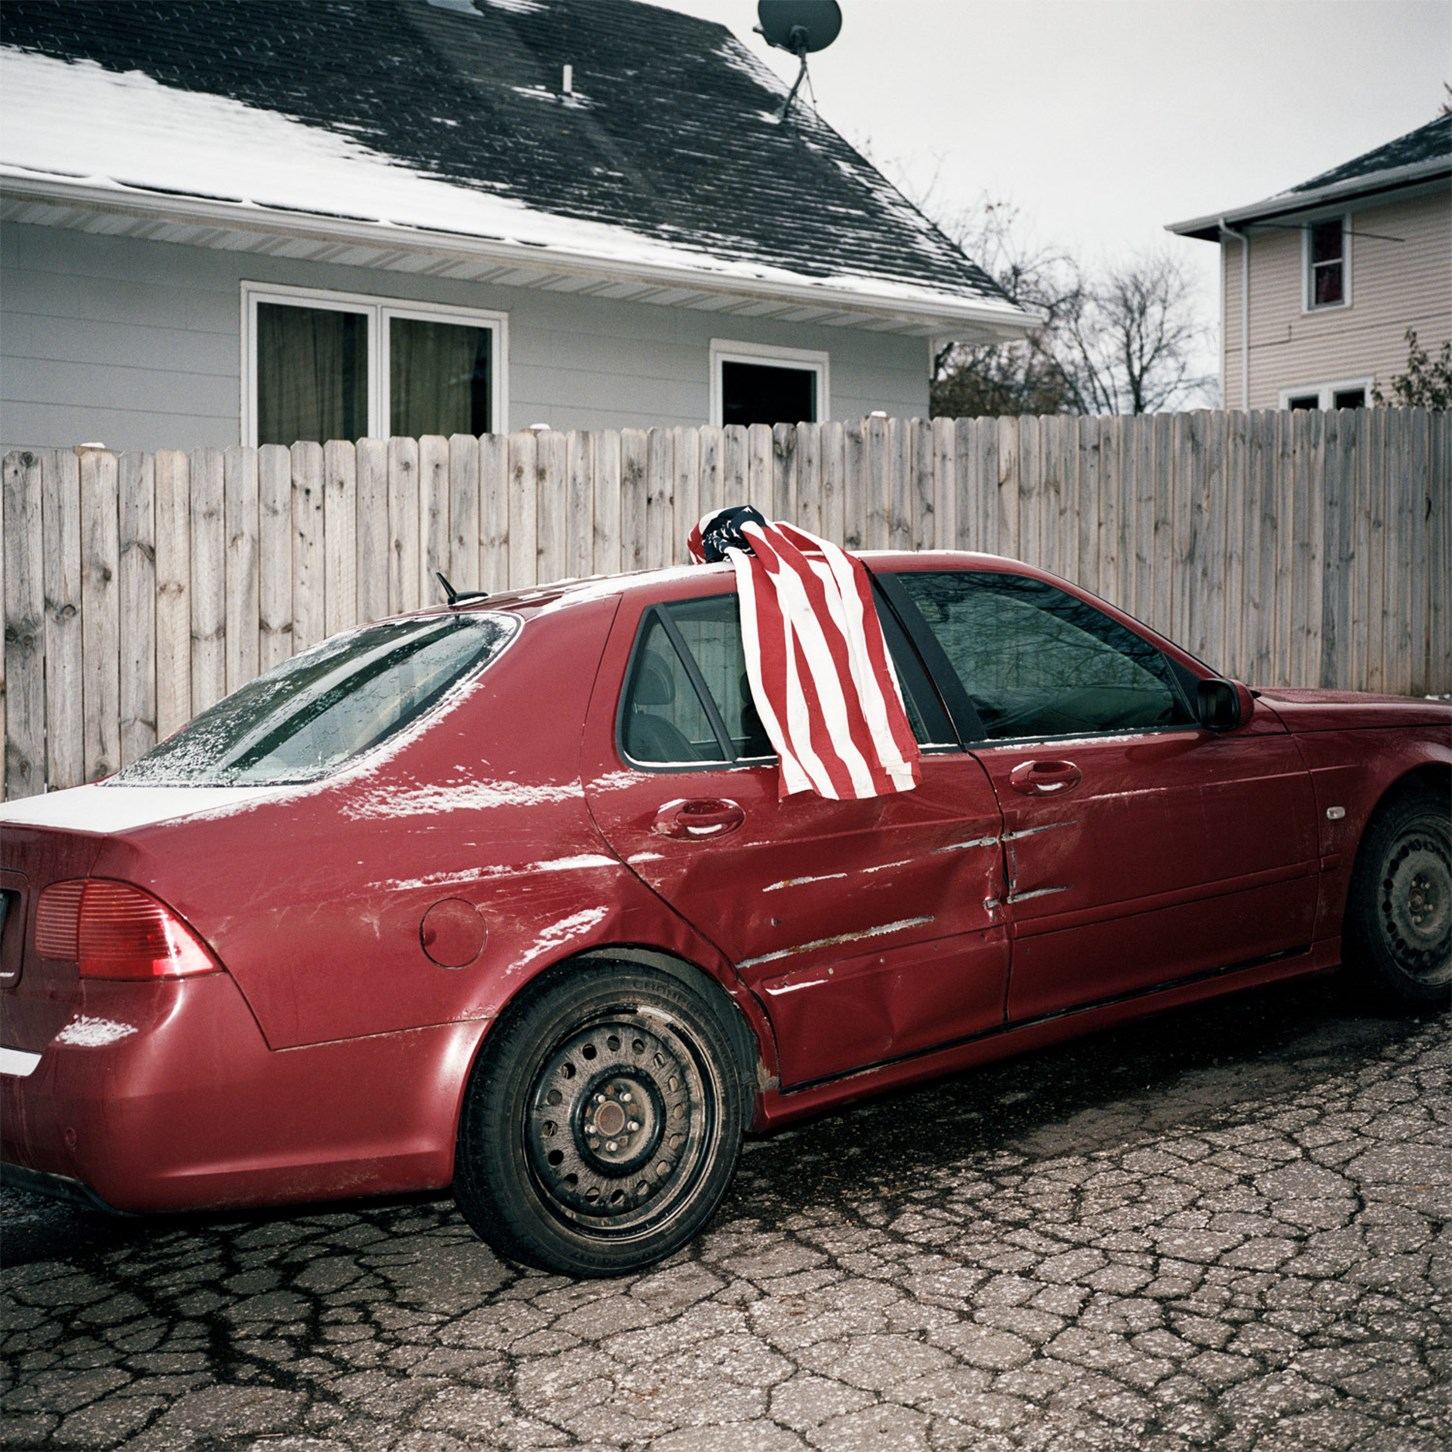 Car With a Flag on It, Duluth, Minnesota, October 2017